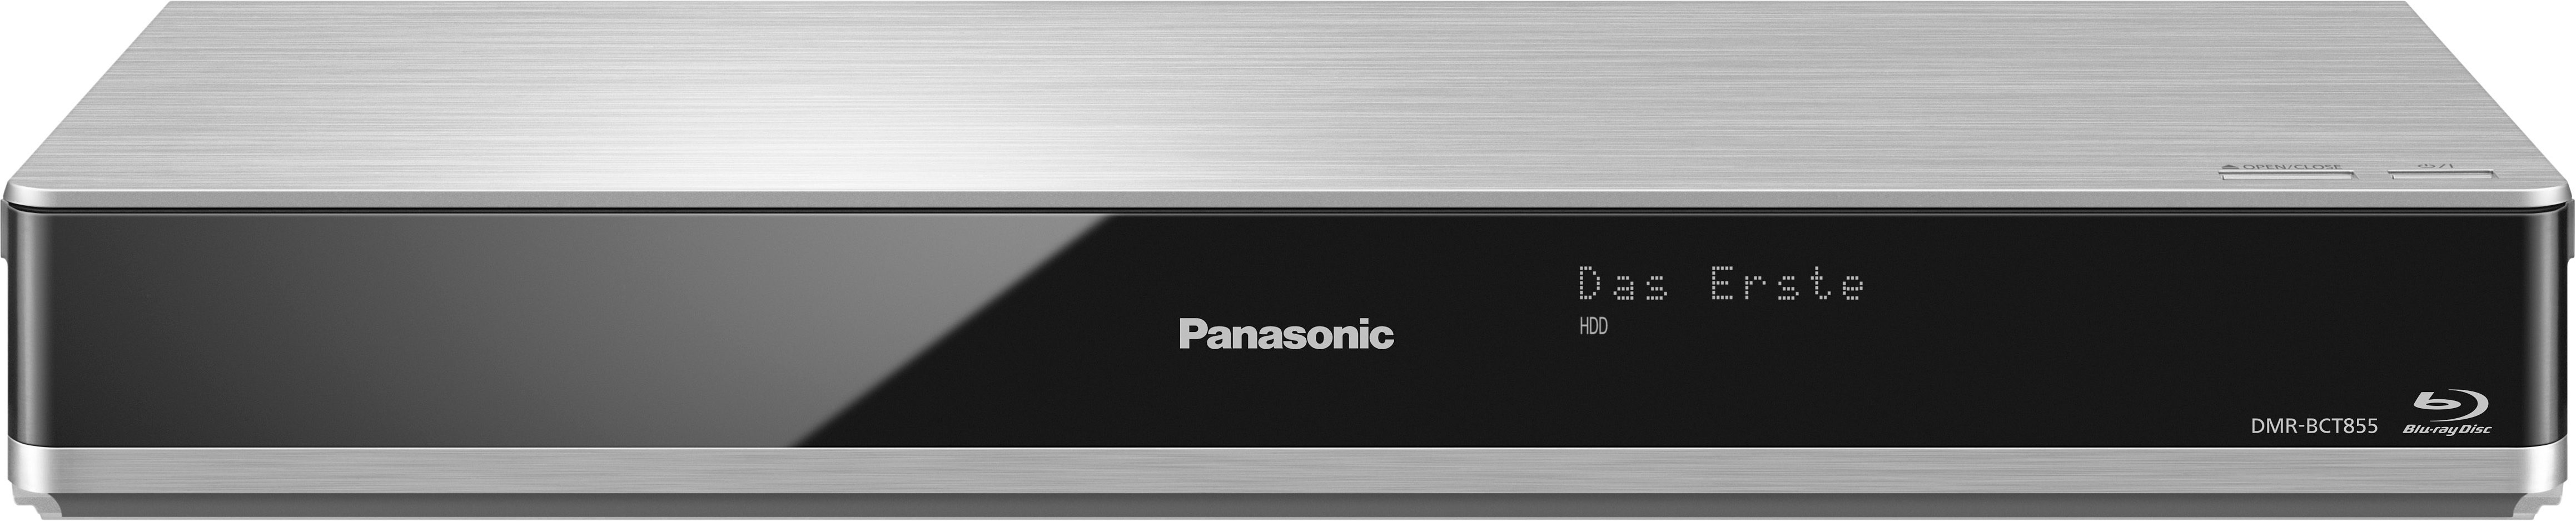 Panasonic DMR-BCT855EG Blu-ray-Recorder, 3D-fähig, 4K (Ultra-HD), 1000 GB, WLAN